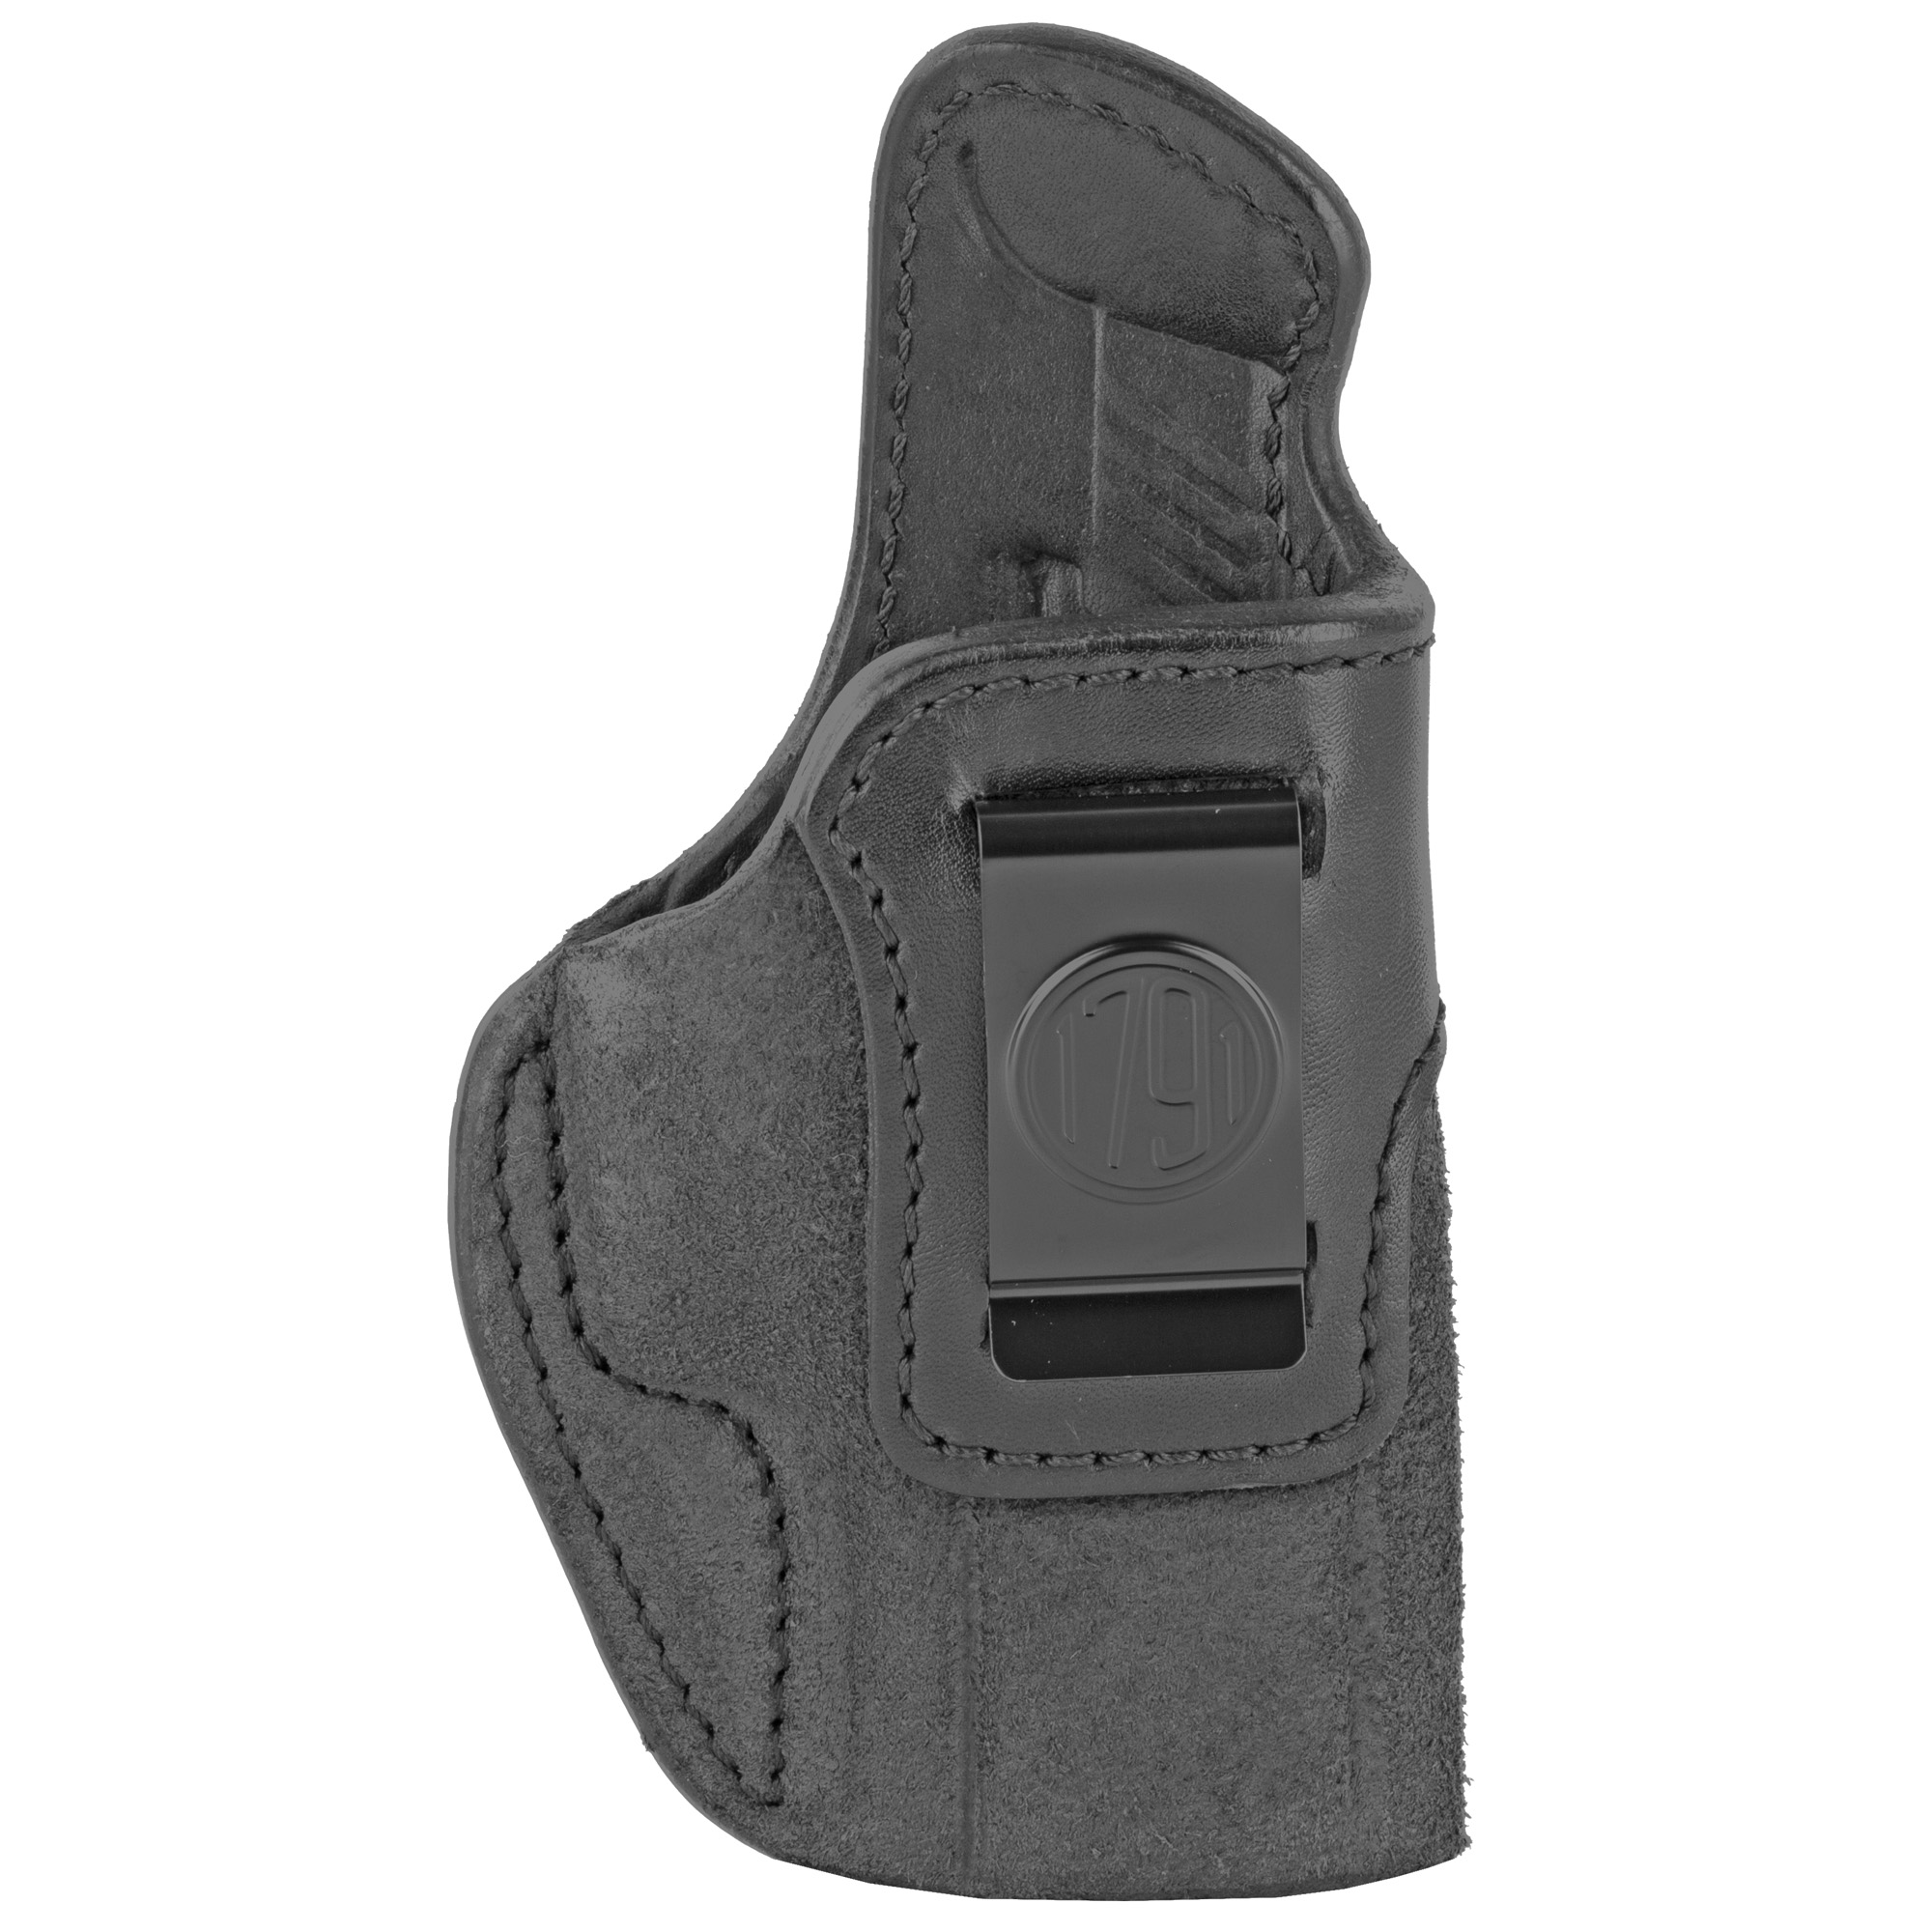 1791 XDS RCH Right Hand Leather Inside Waistband Holster - Black-img-1